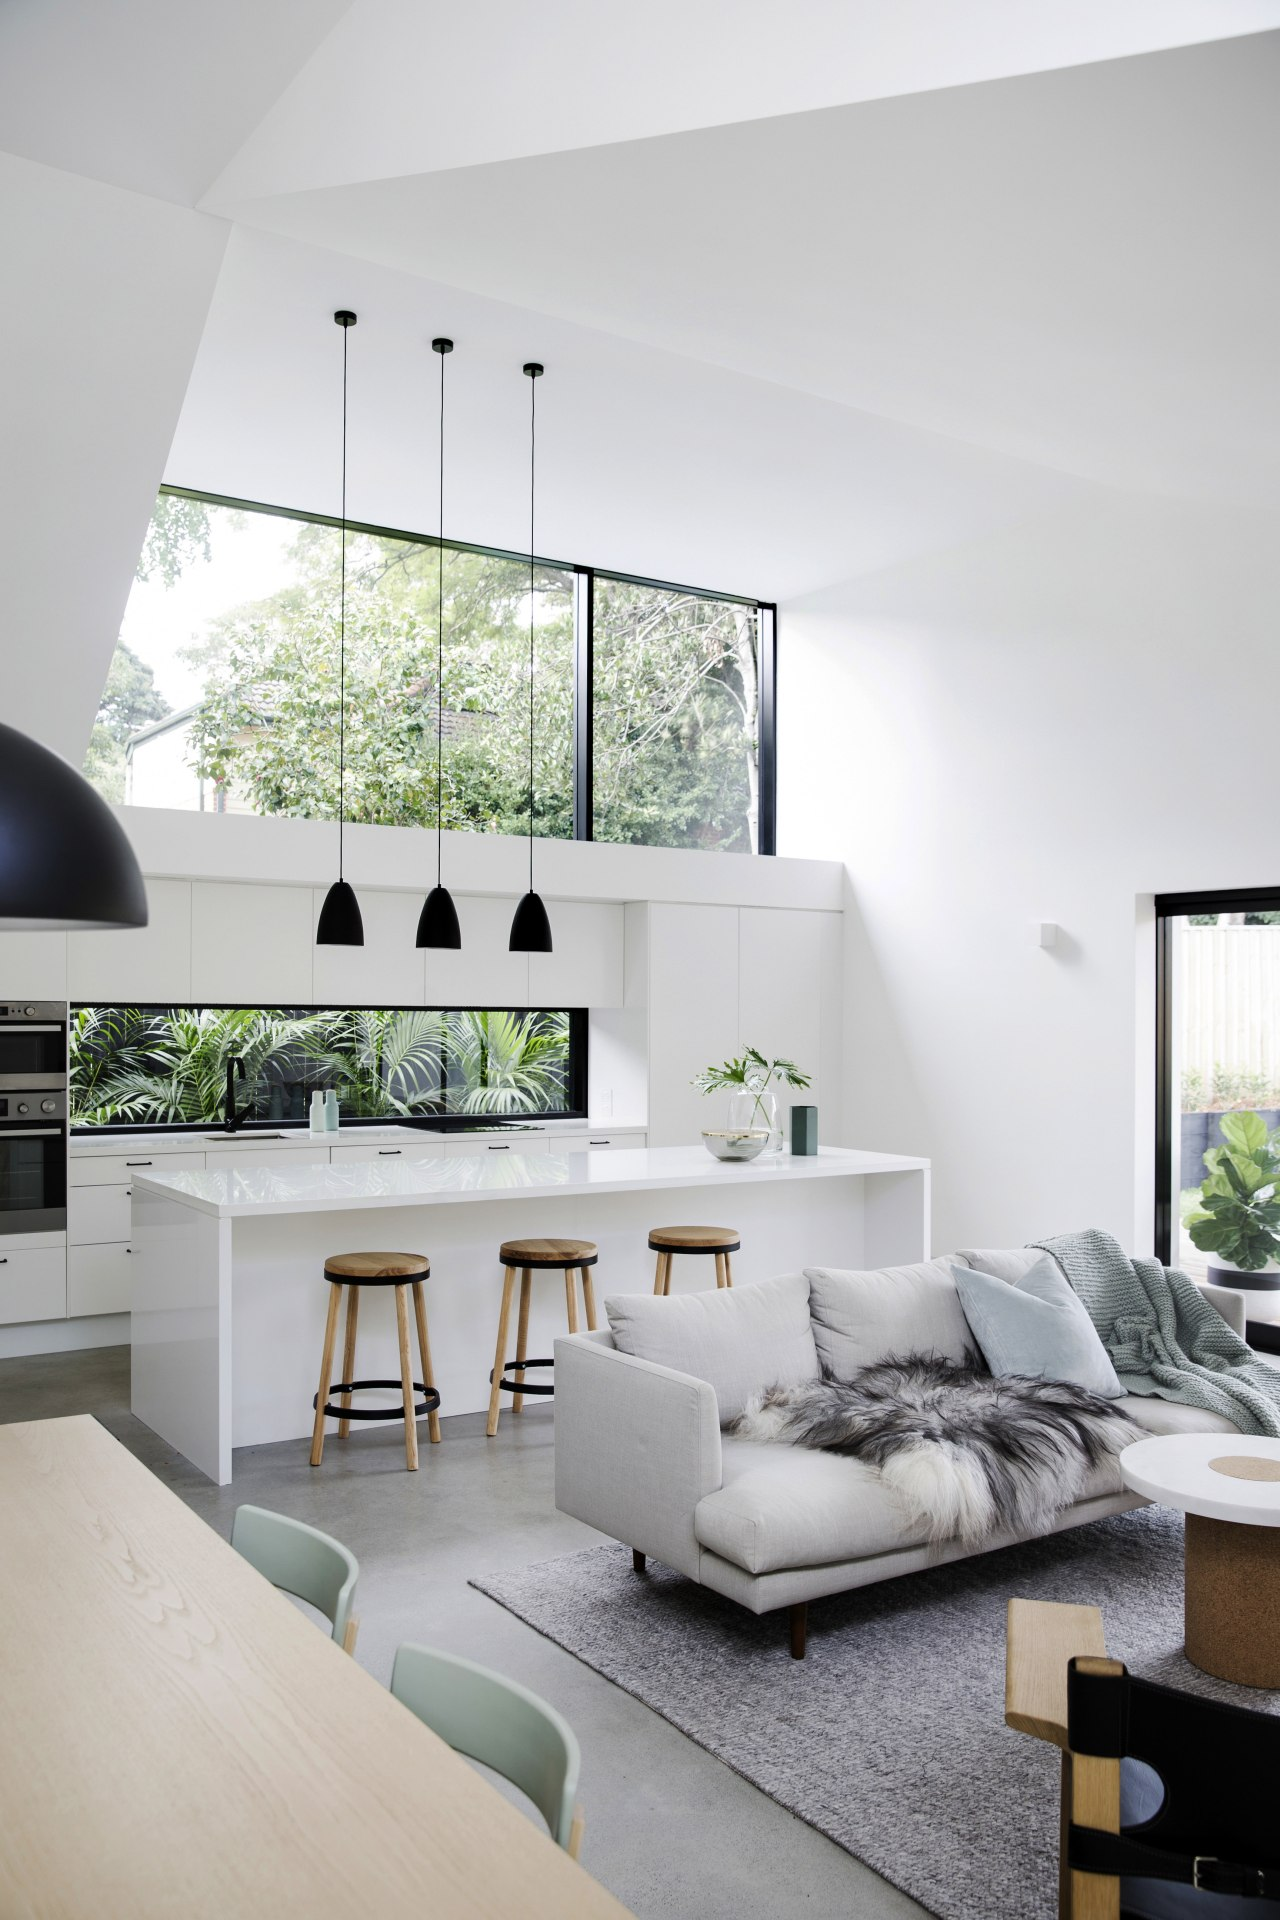 Architect Eva-Marie Prineas design for this renovation project architecture, ceiling, daylighting, furniture, home, house, interior design, interior designer, living room, room, table, wall, gray, white